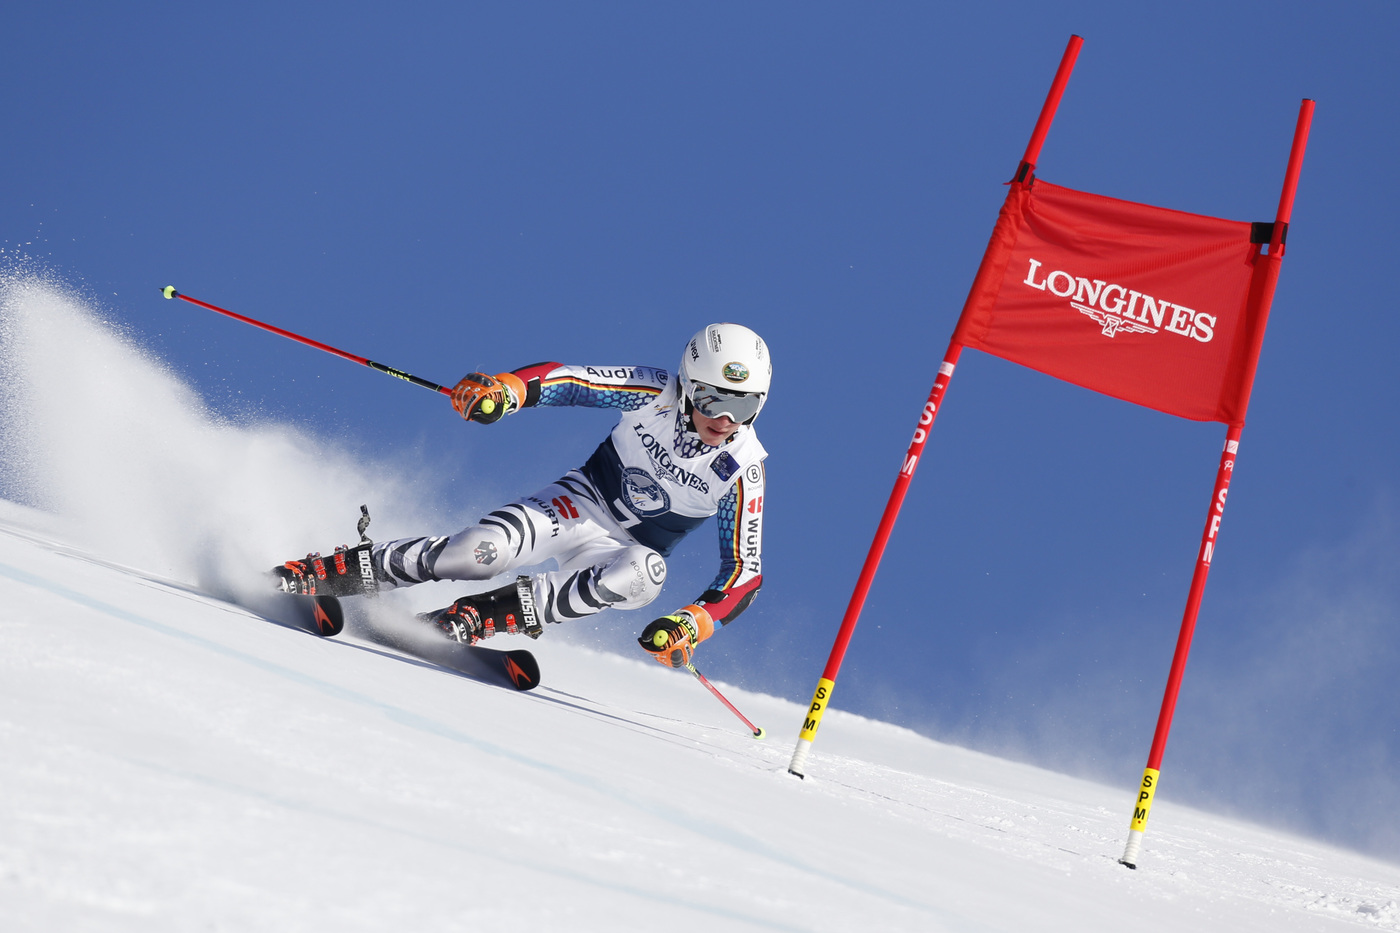 Longines Alpine Skiing Event: Longines Future Ski Champions : The best international young skiers faced off during the FIS Alpine World Cup Finals   16